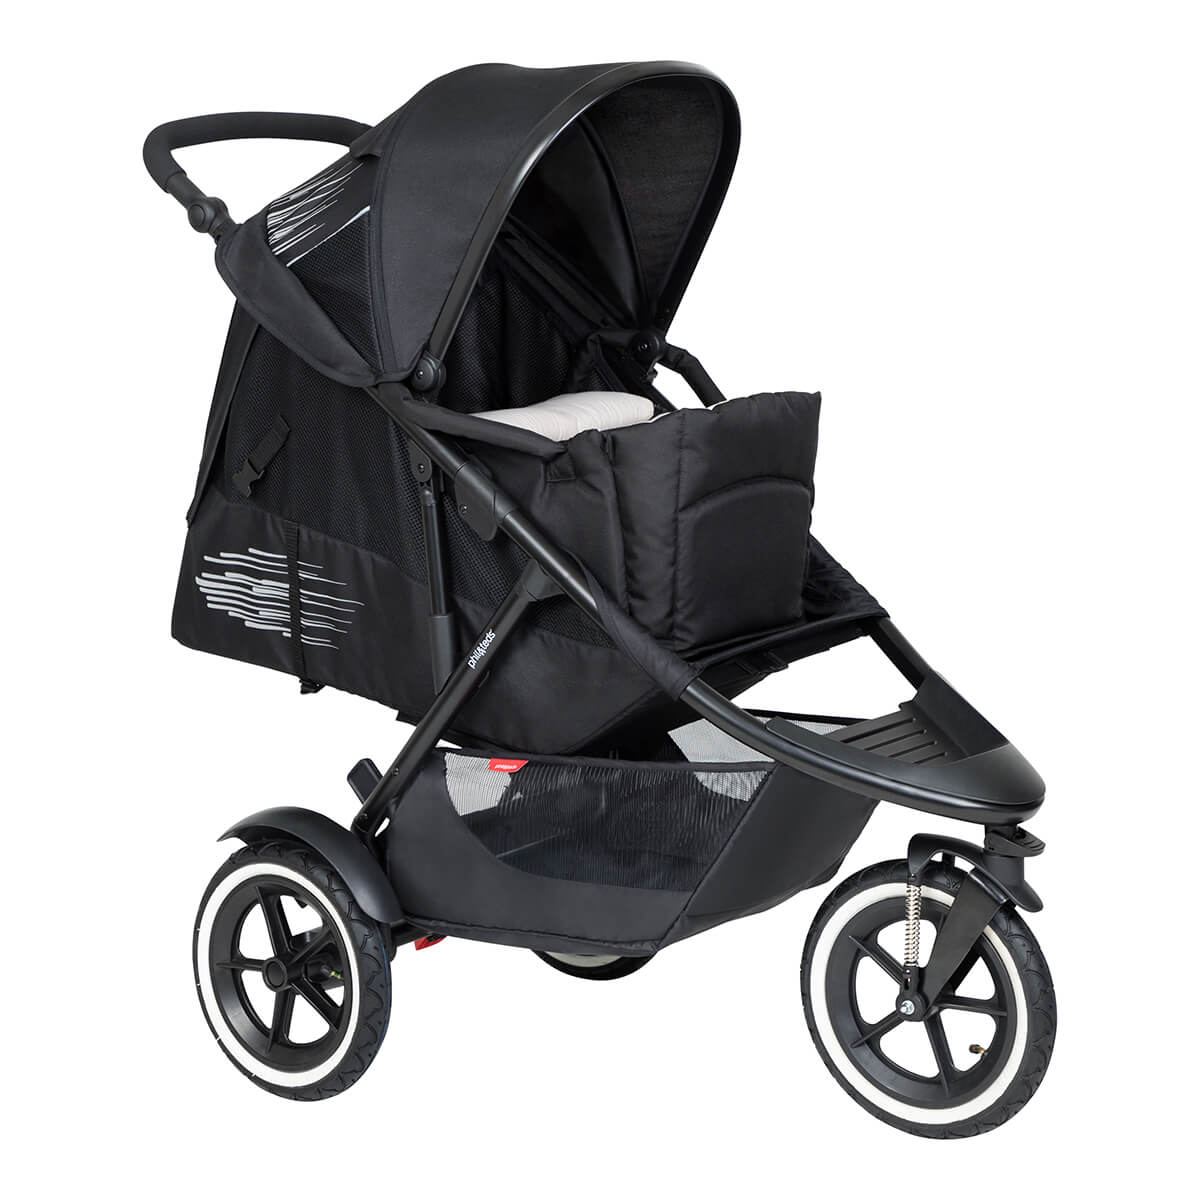 https://cdn.accentuate.io/4509528588376/19272668119128/philteds-sport-poussette-with-cocoon-full-recline-v1626484499885.jpg?1200x1200